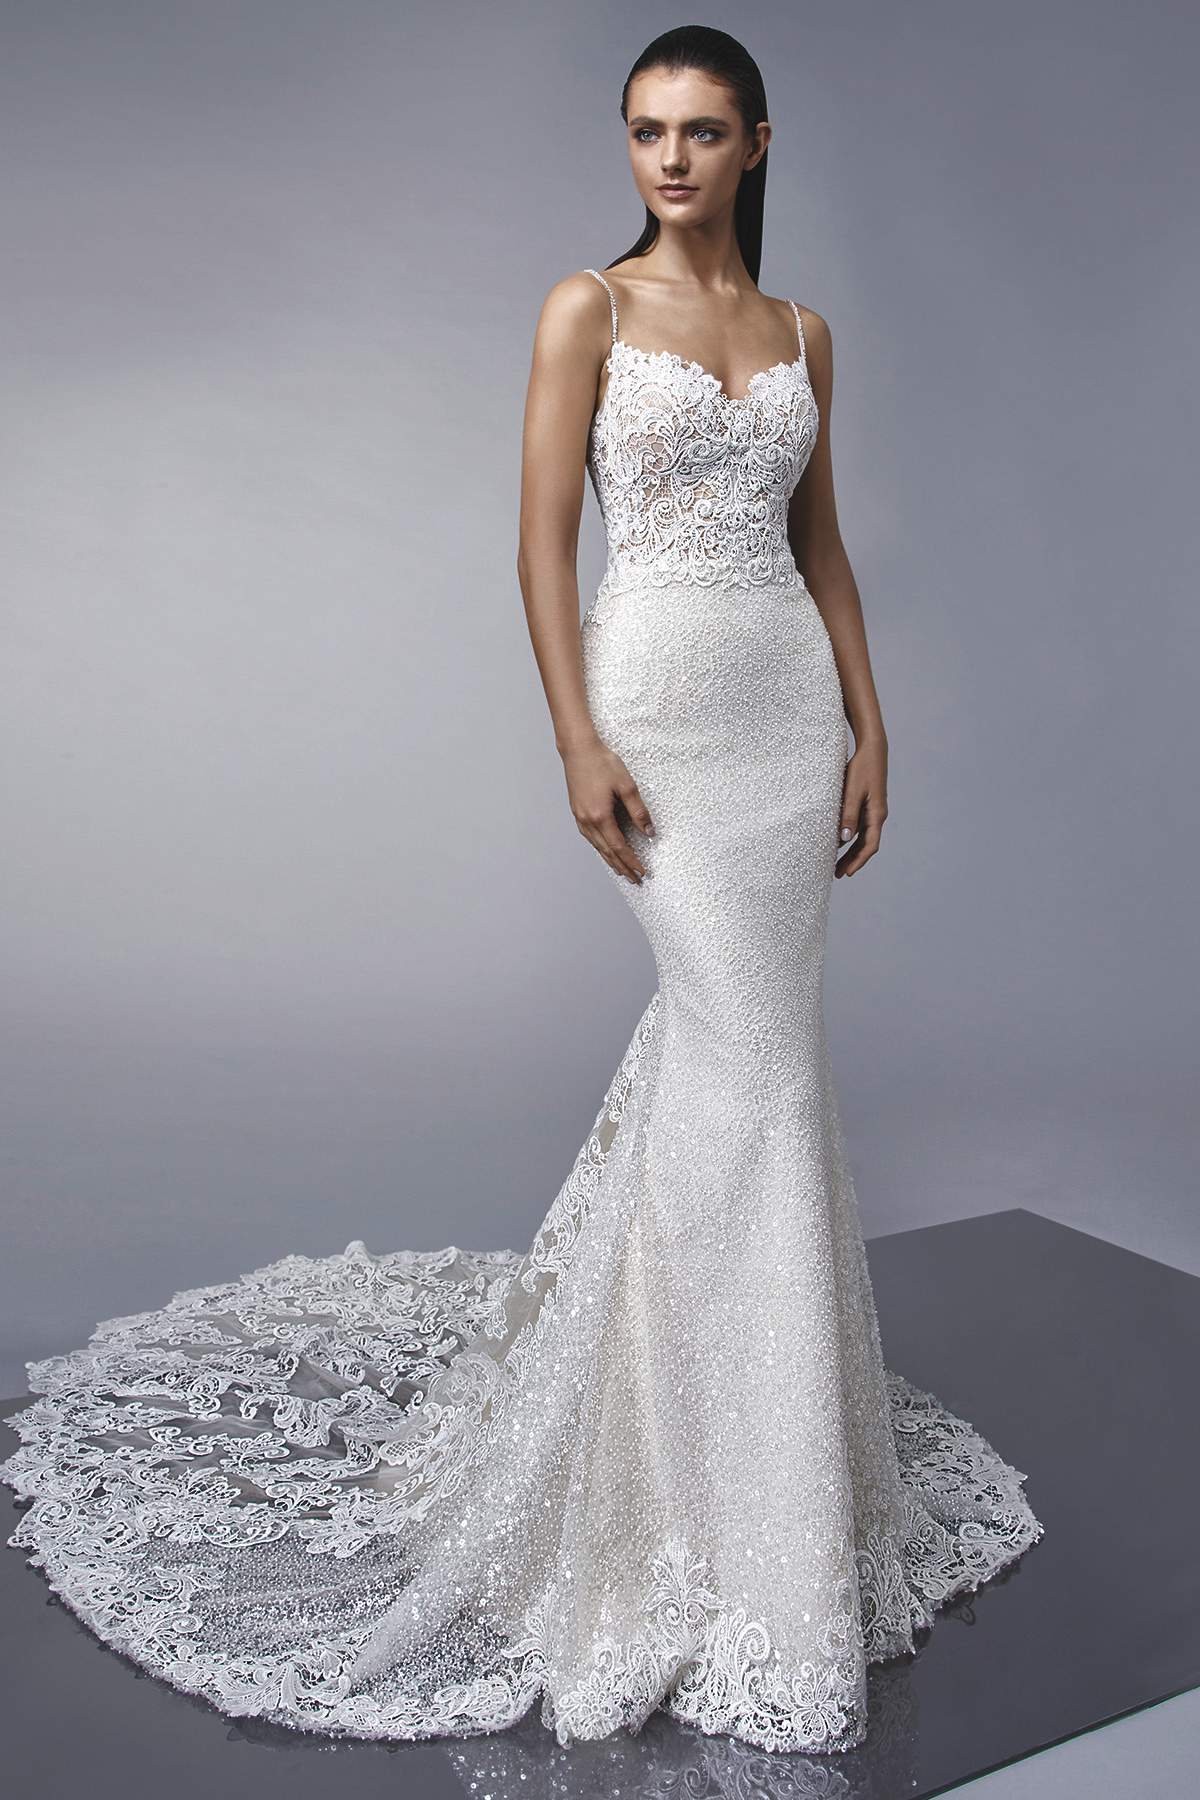 Midori by Enzoani - Find Your Dream Dress